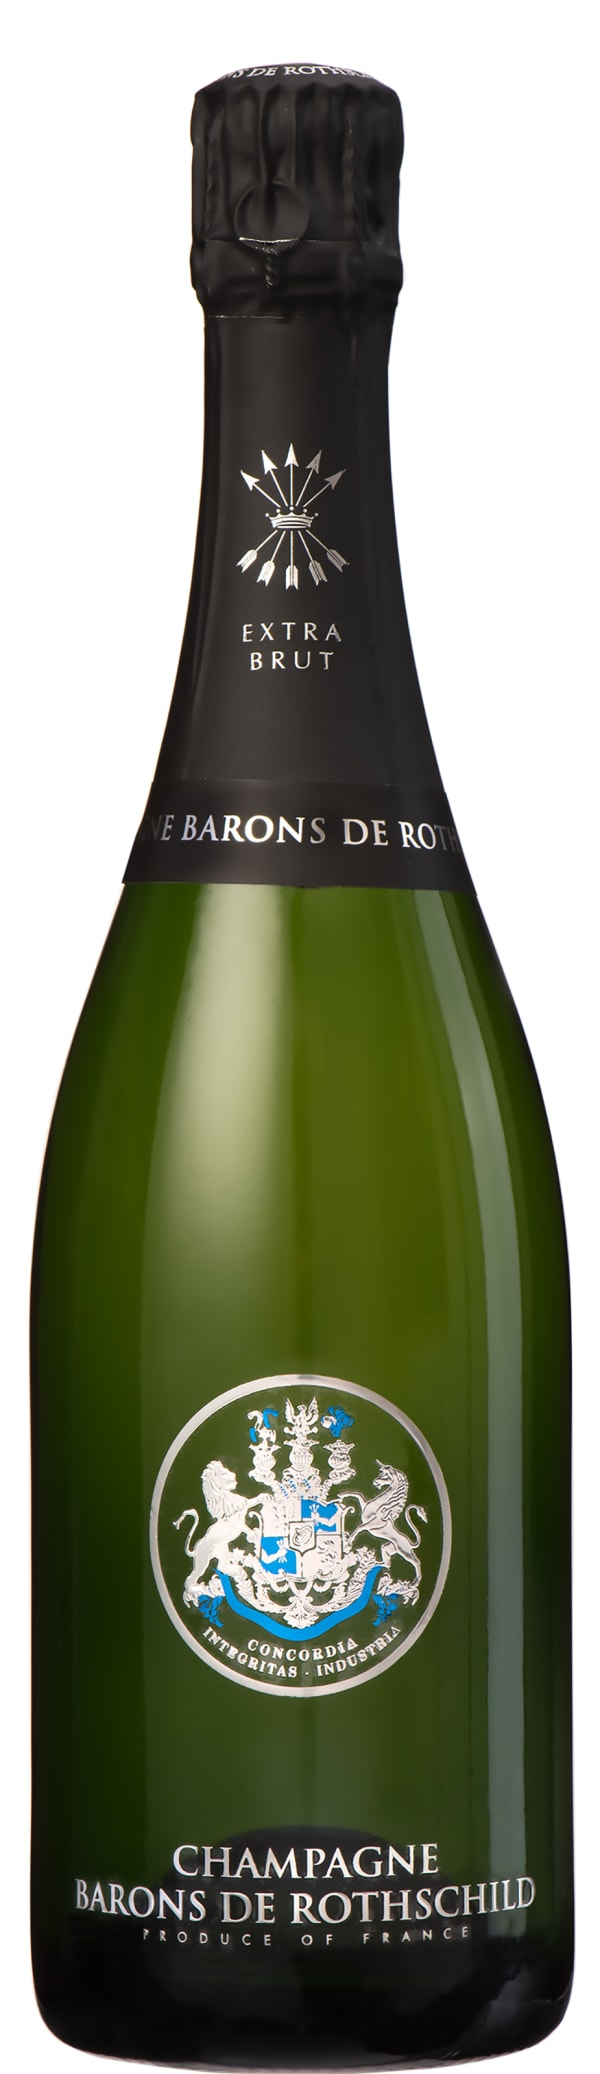 Barons de Rothschild Champagne Extra Brut